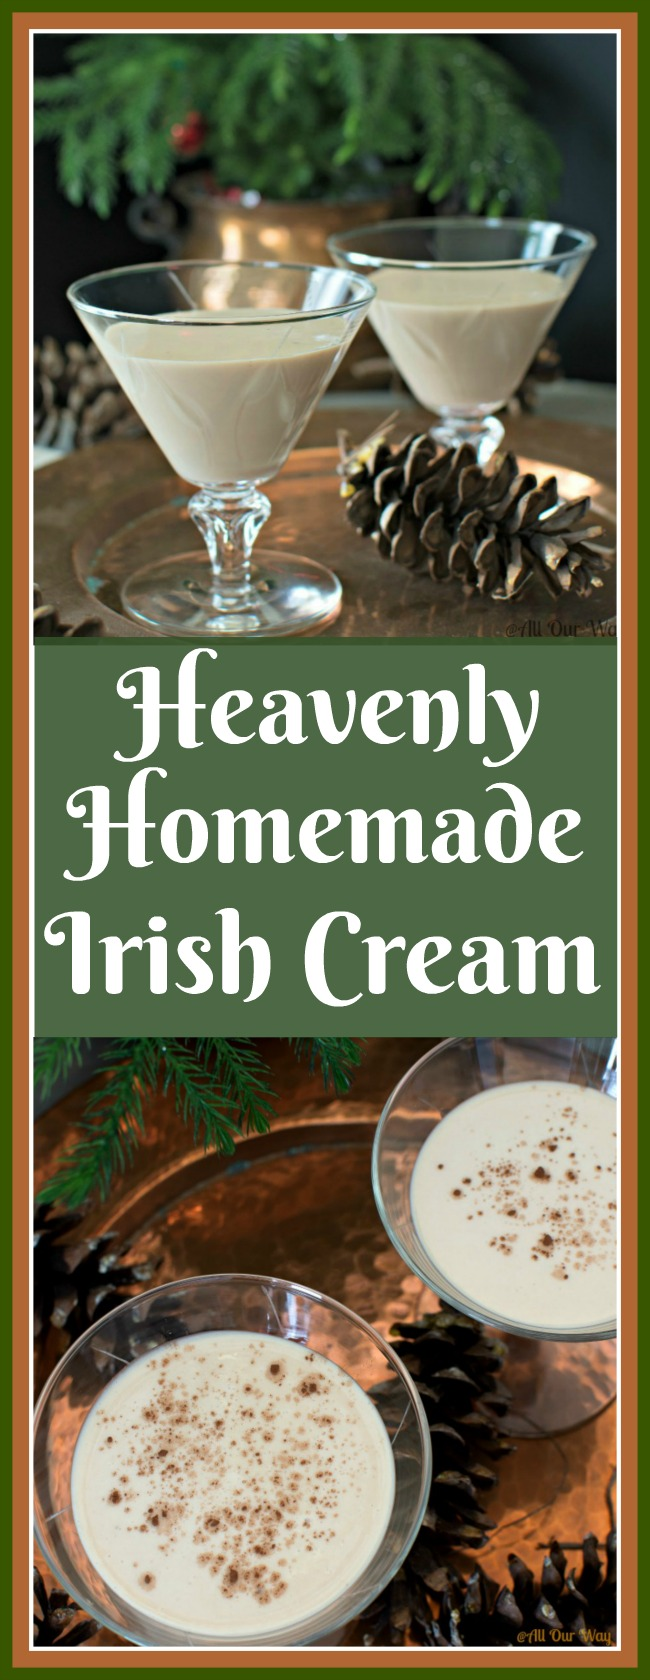 Heavenly Homemade Irish Cream is a decadent dessert in a glass @allourway.com